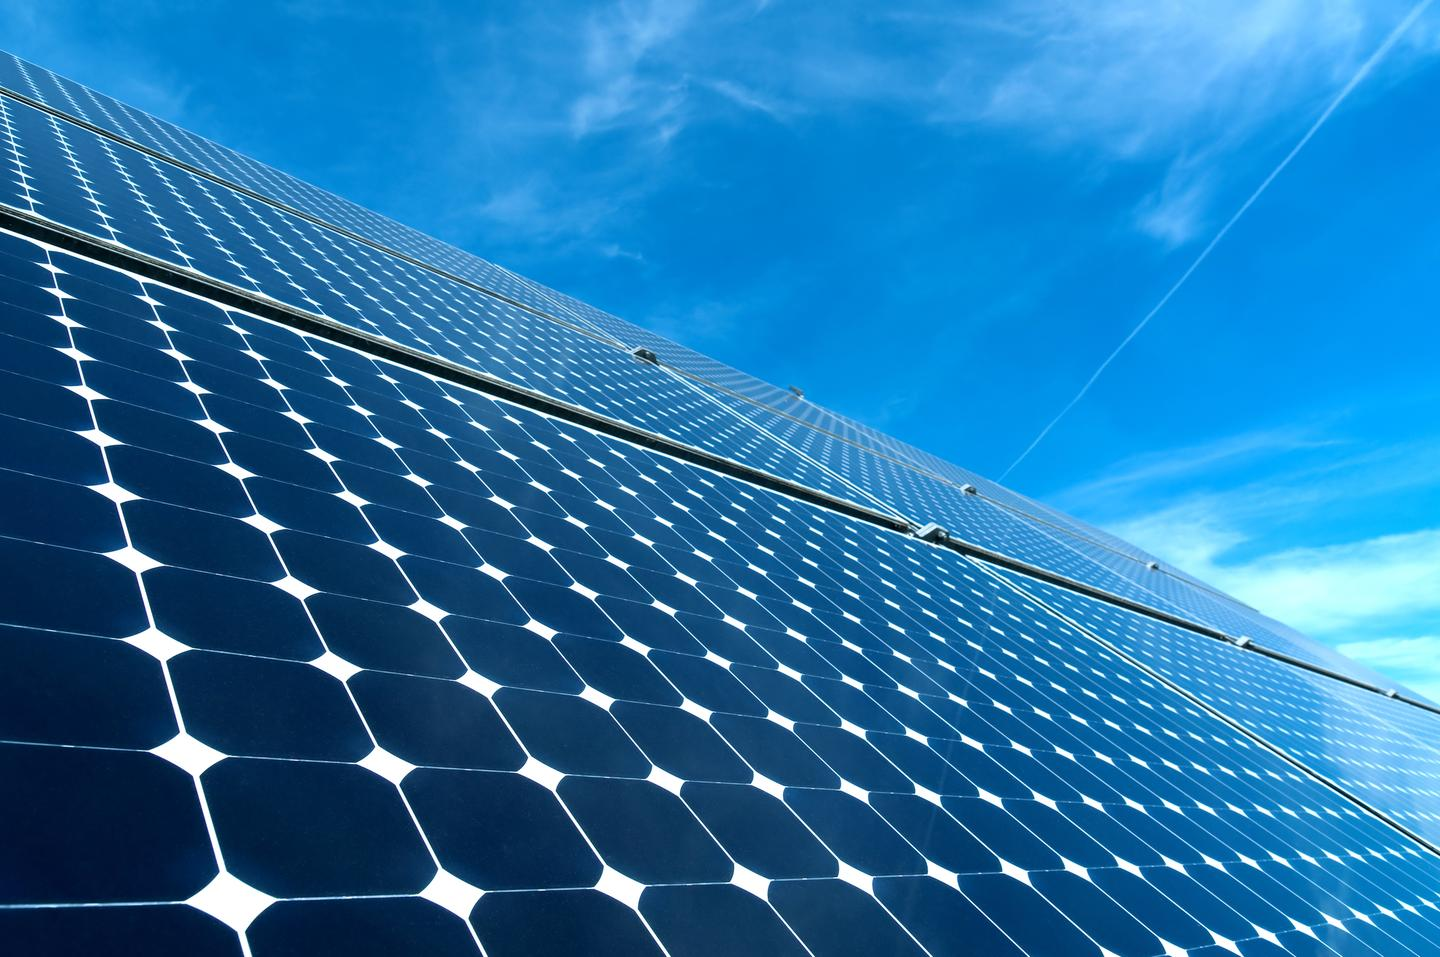 Scientists have come up with a new design for perovskite solar cells they say could overcome long-standing stability issues